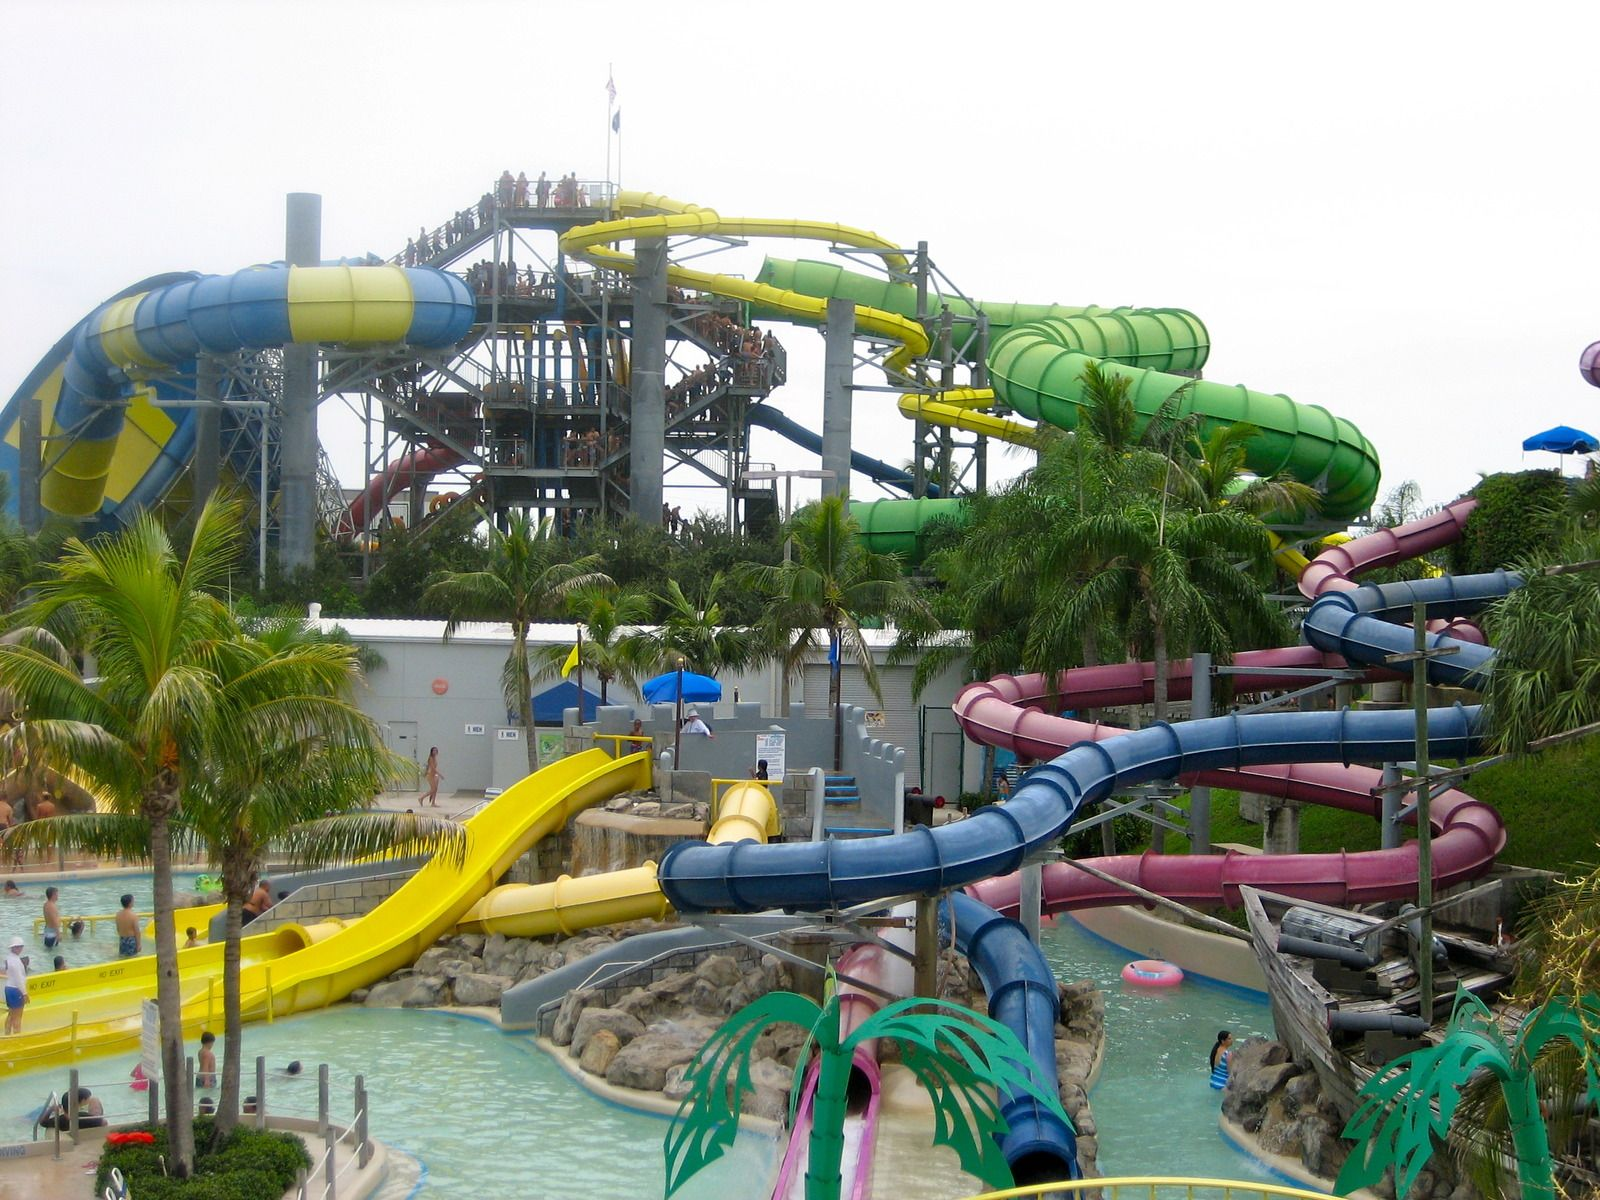 Rapids Water Park In West Palm Beach Fl Image Submitted To Facebook Photo Contest